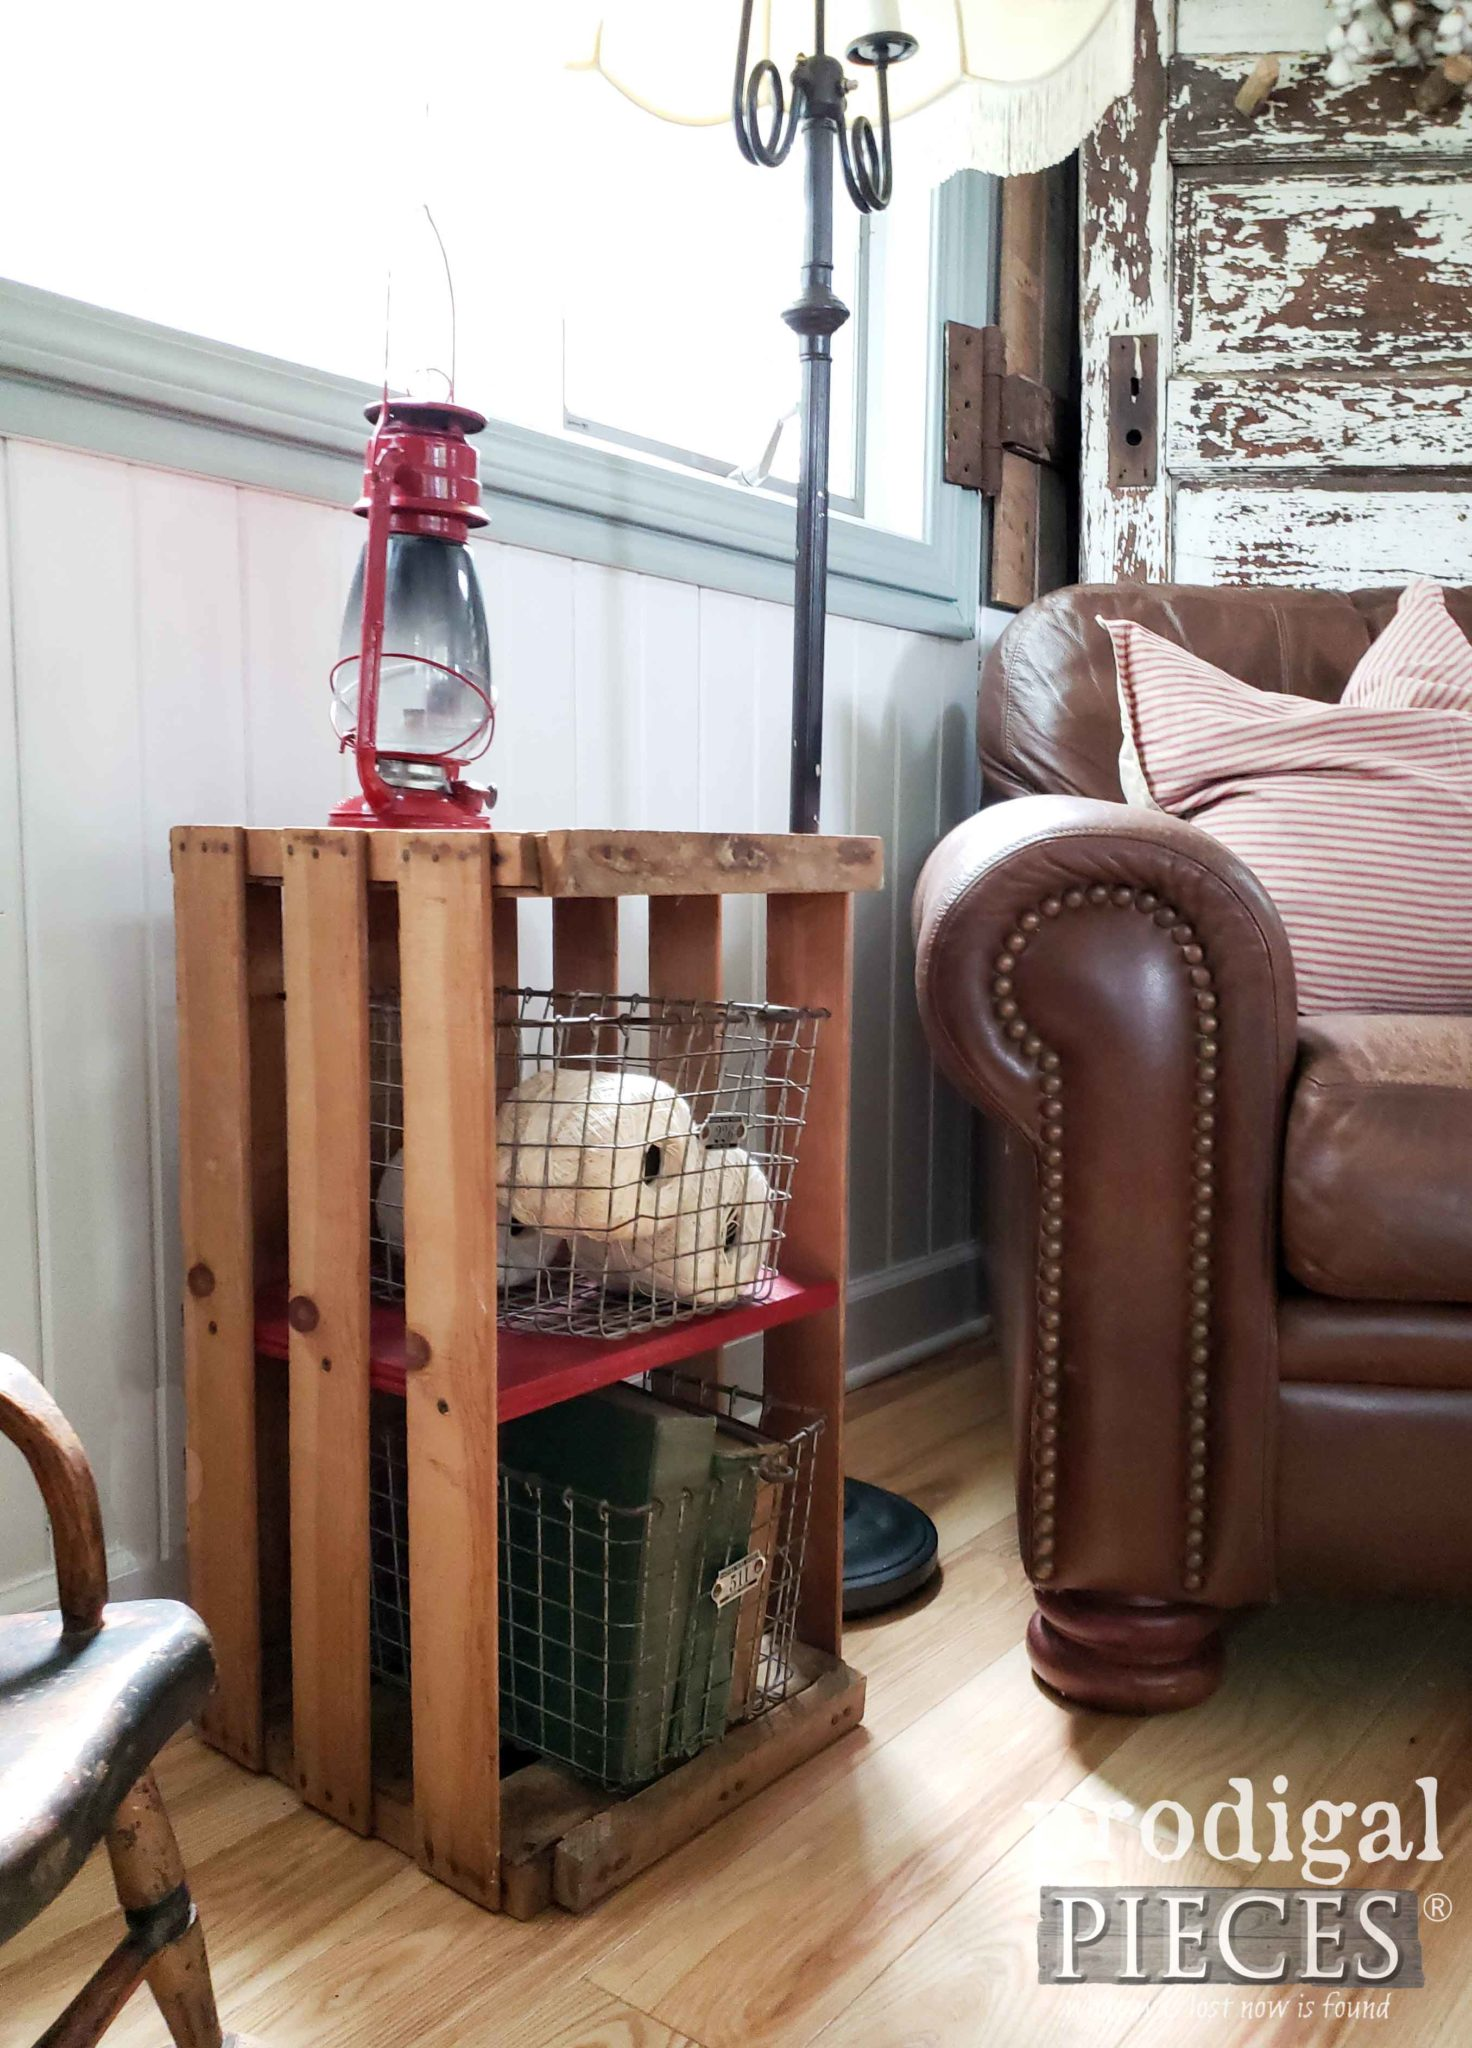 Upcycled Crate End Table for Farmhouse Decor by Larissa of Prodigal Pieces | prodigalpieces.com #prodigalpieces #diy #farmhouse #home #homedecor